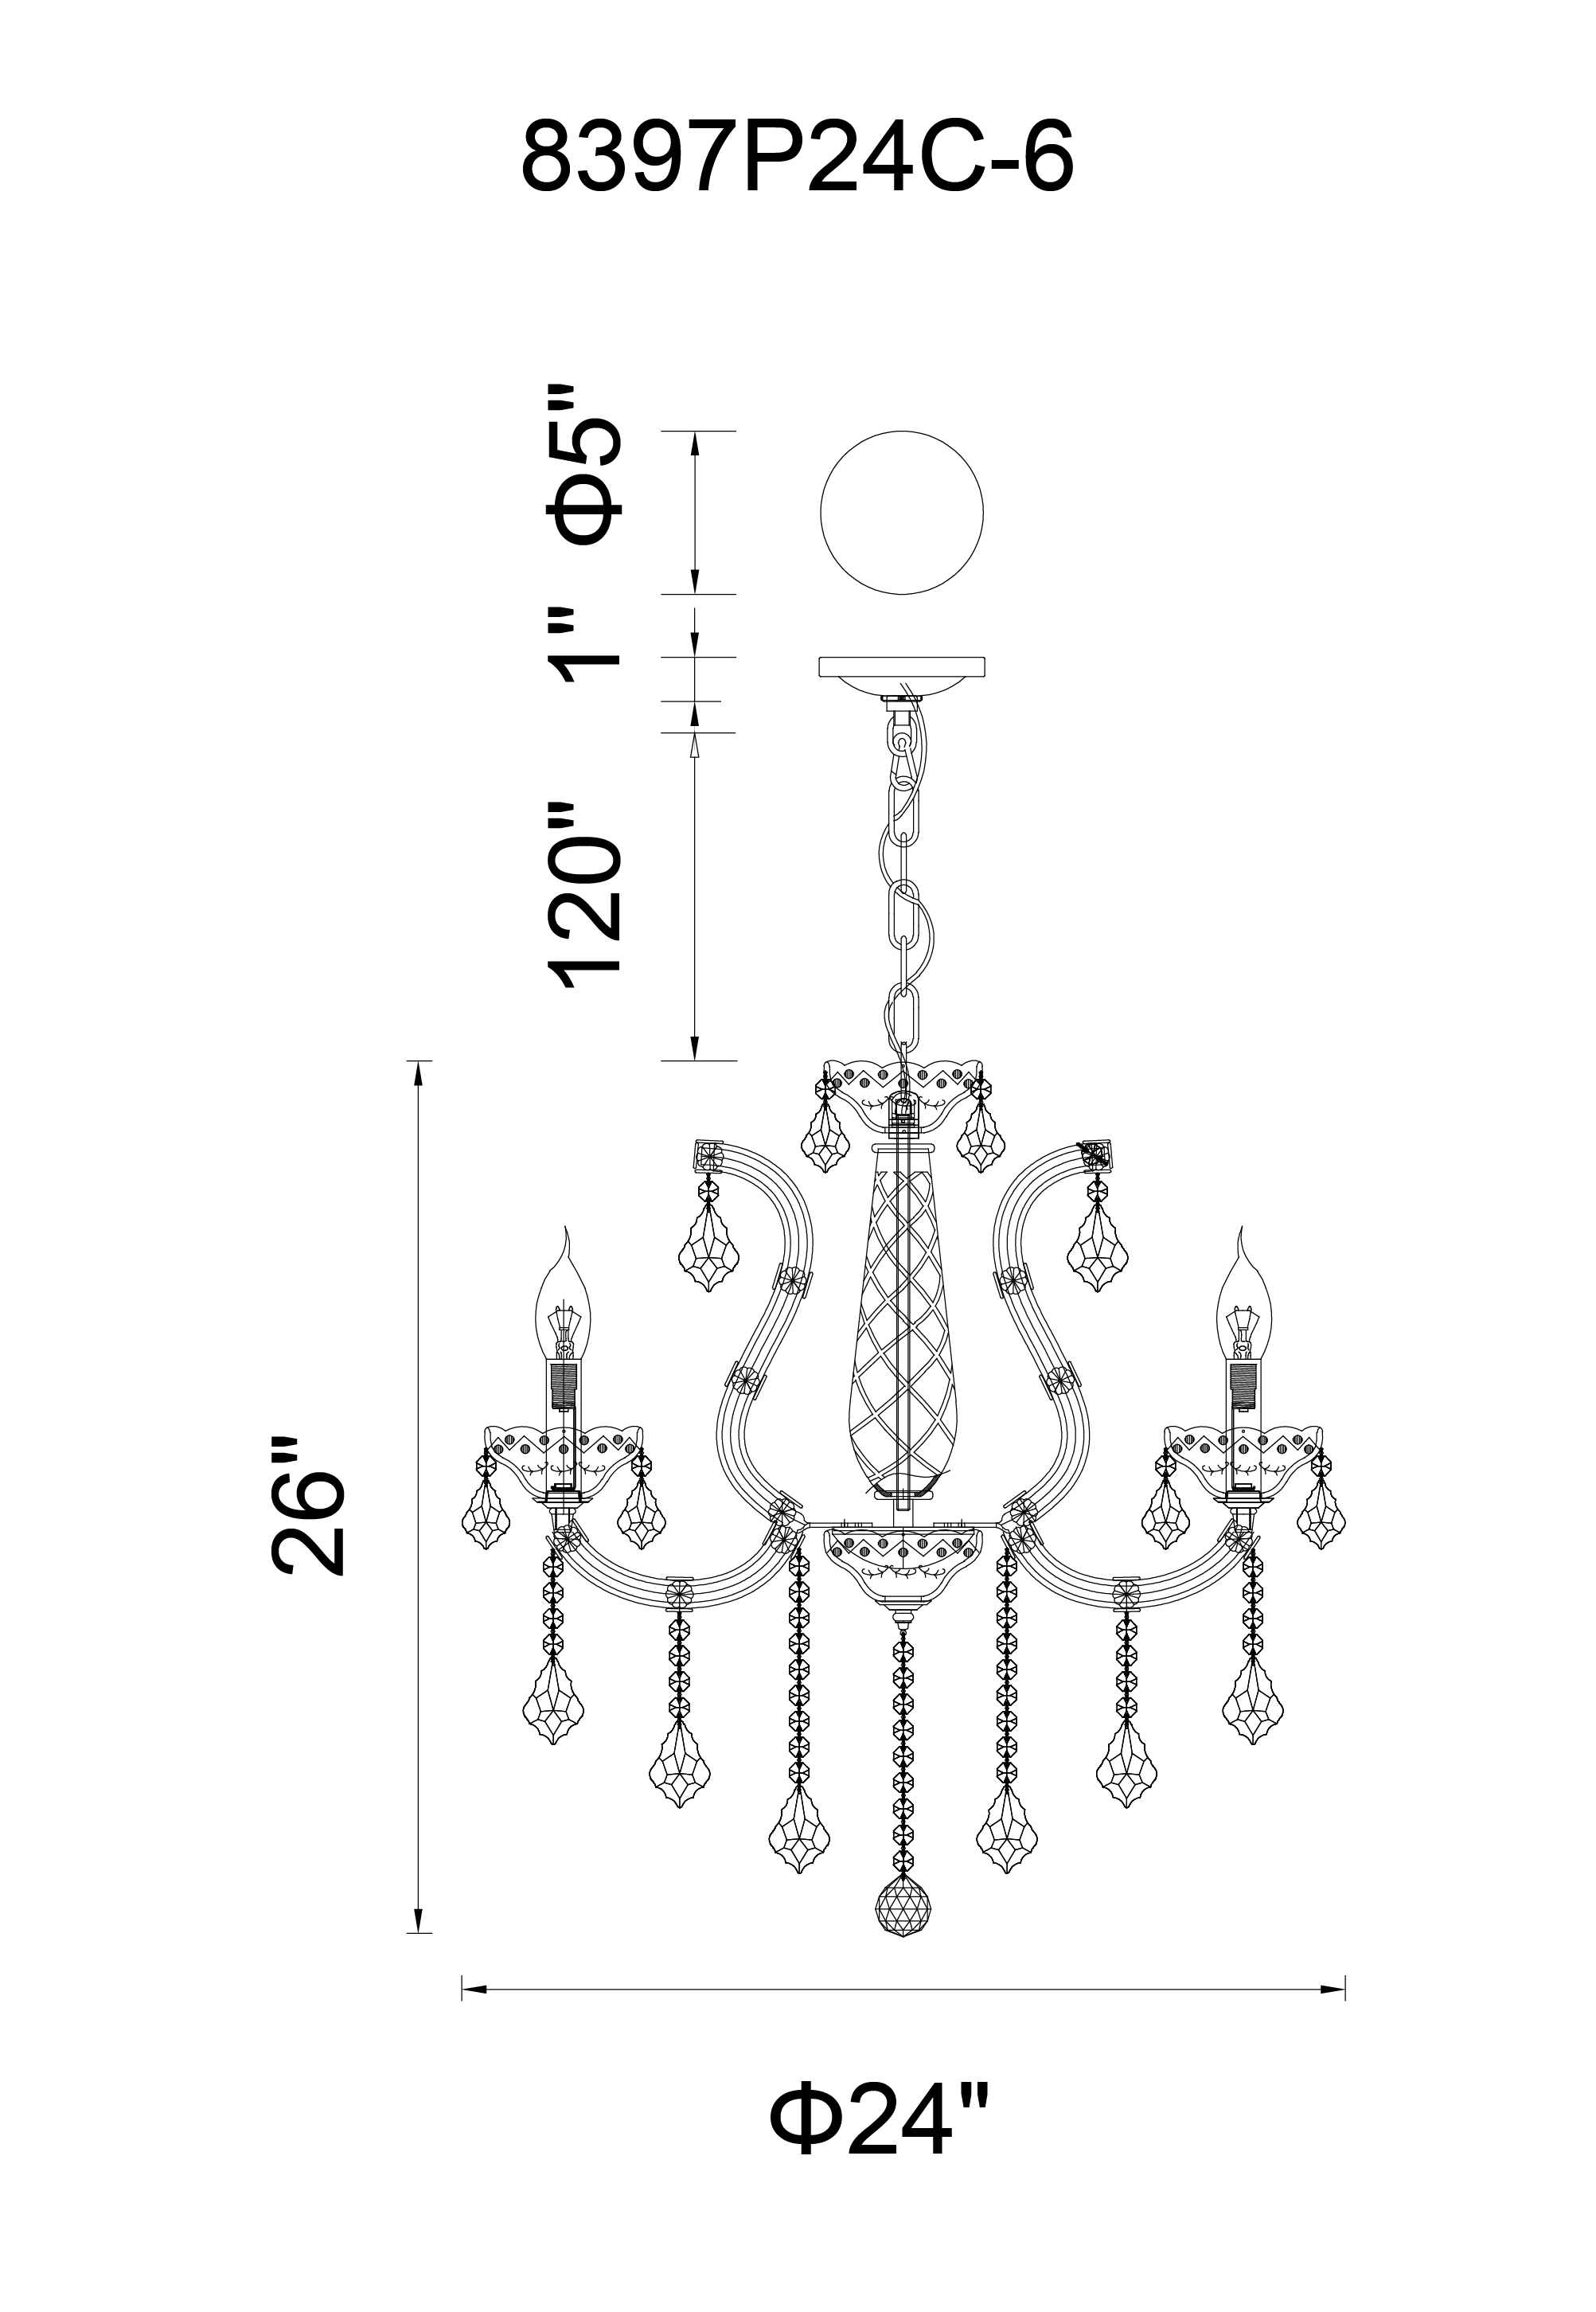 CWI Lighting Maria Theresa 6 Light Up Chandelier With Chrome Finish Model: 8397P24C-6(CLEAR) Line Drawing